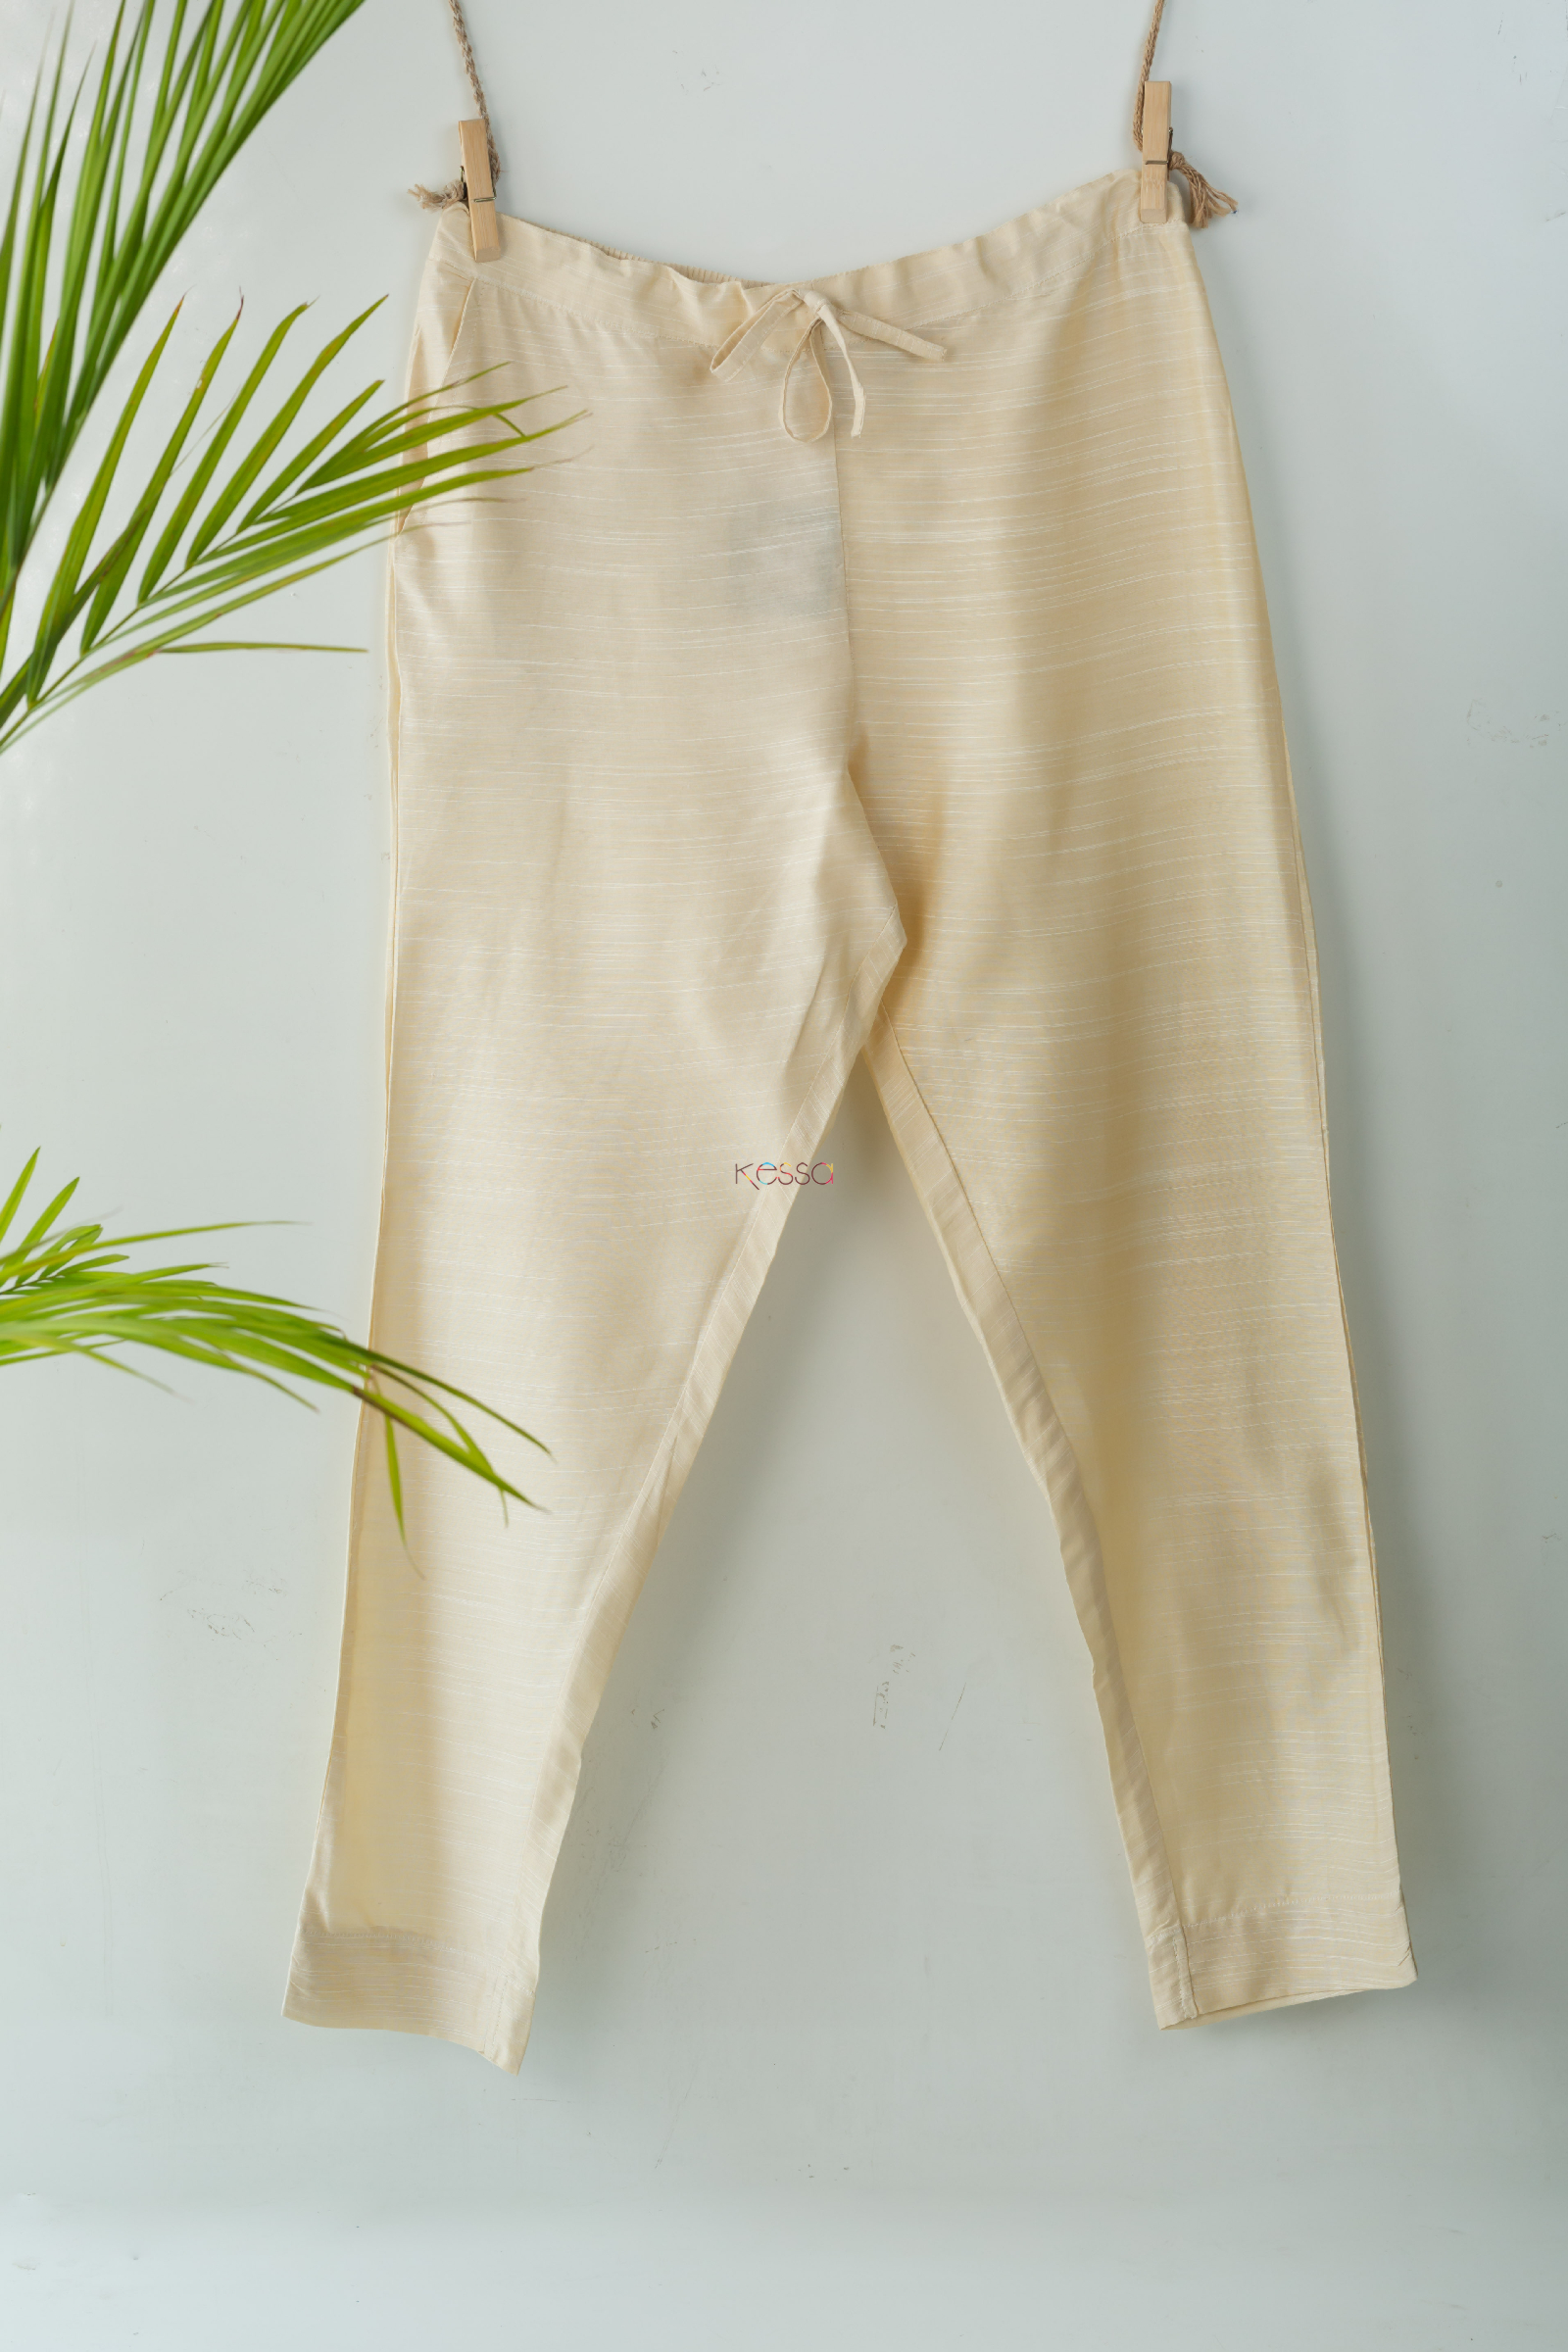 Ws207p Cotton Silk Pants Pocket Elasticated Waist Off White Featured Hd